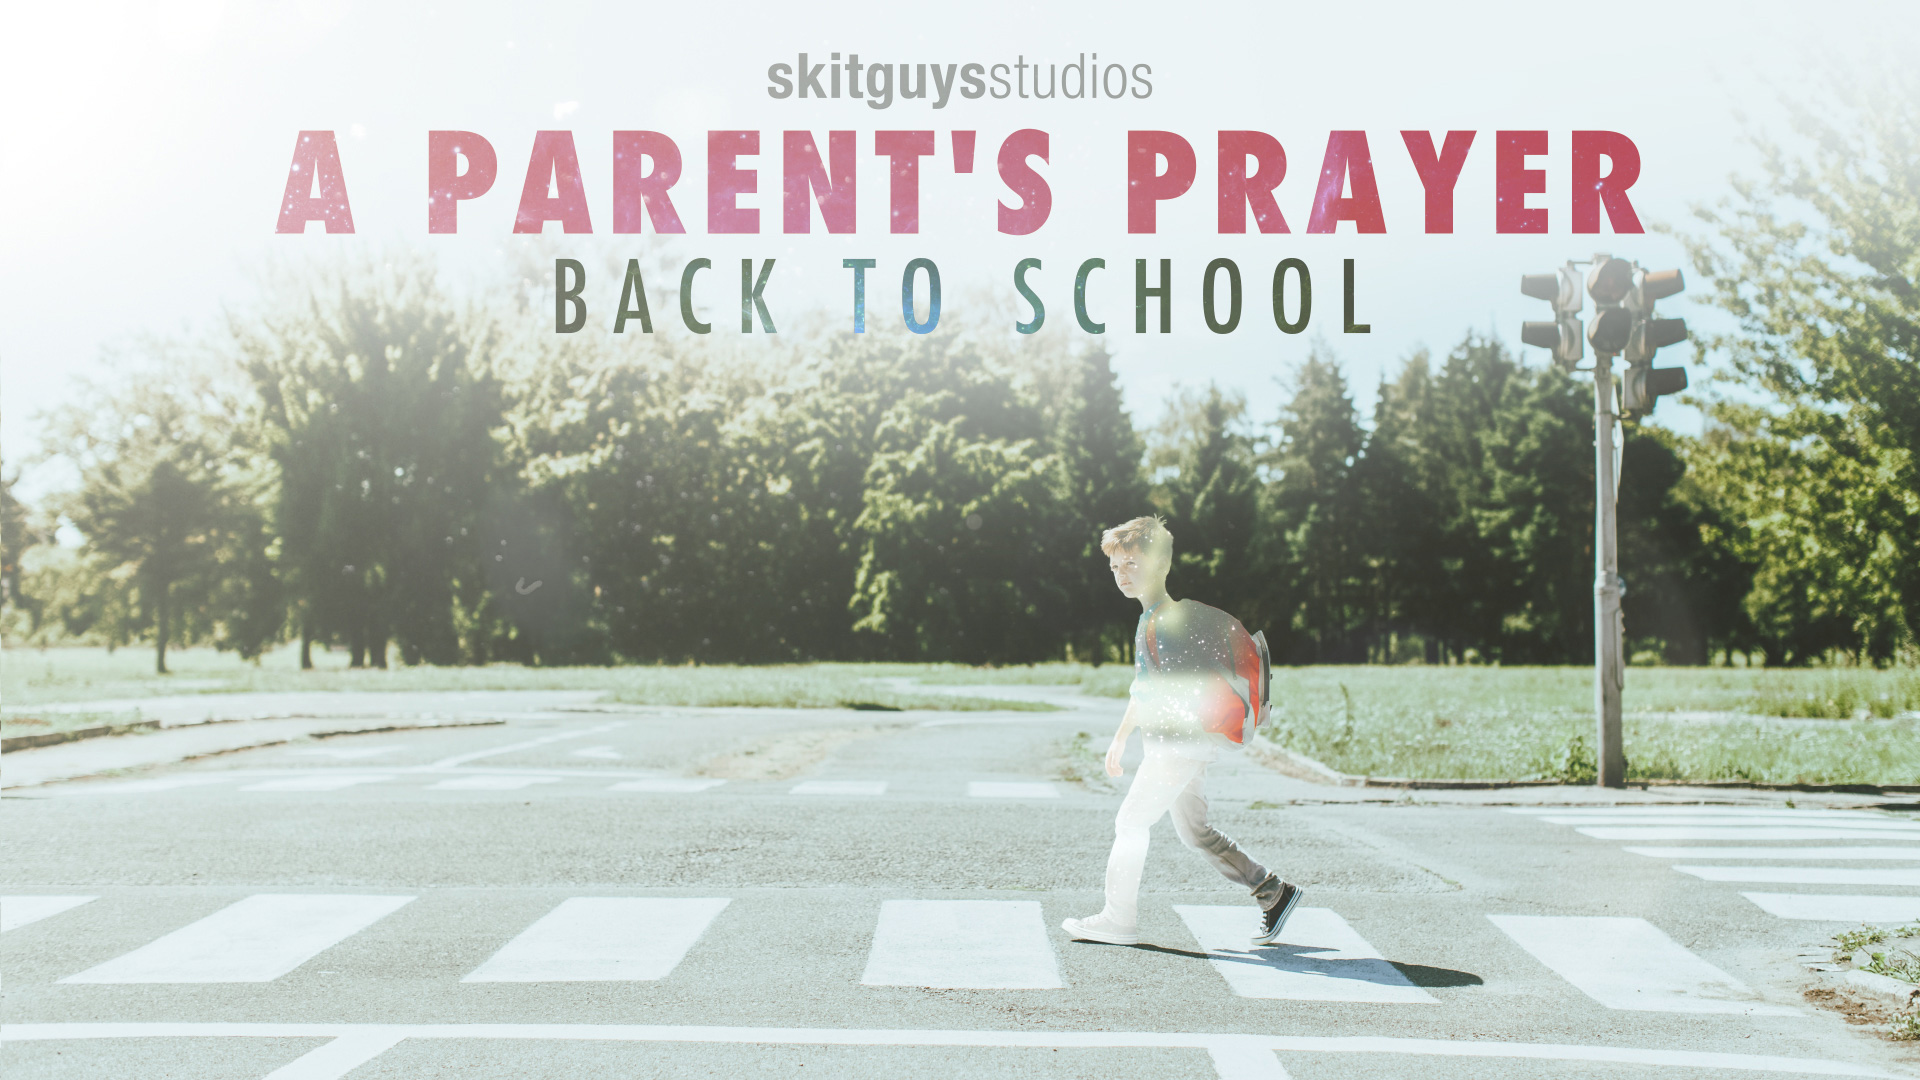 A Parent's Prayer: Back to School